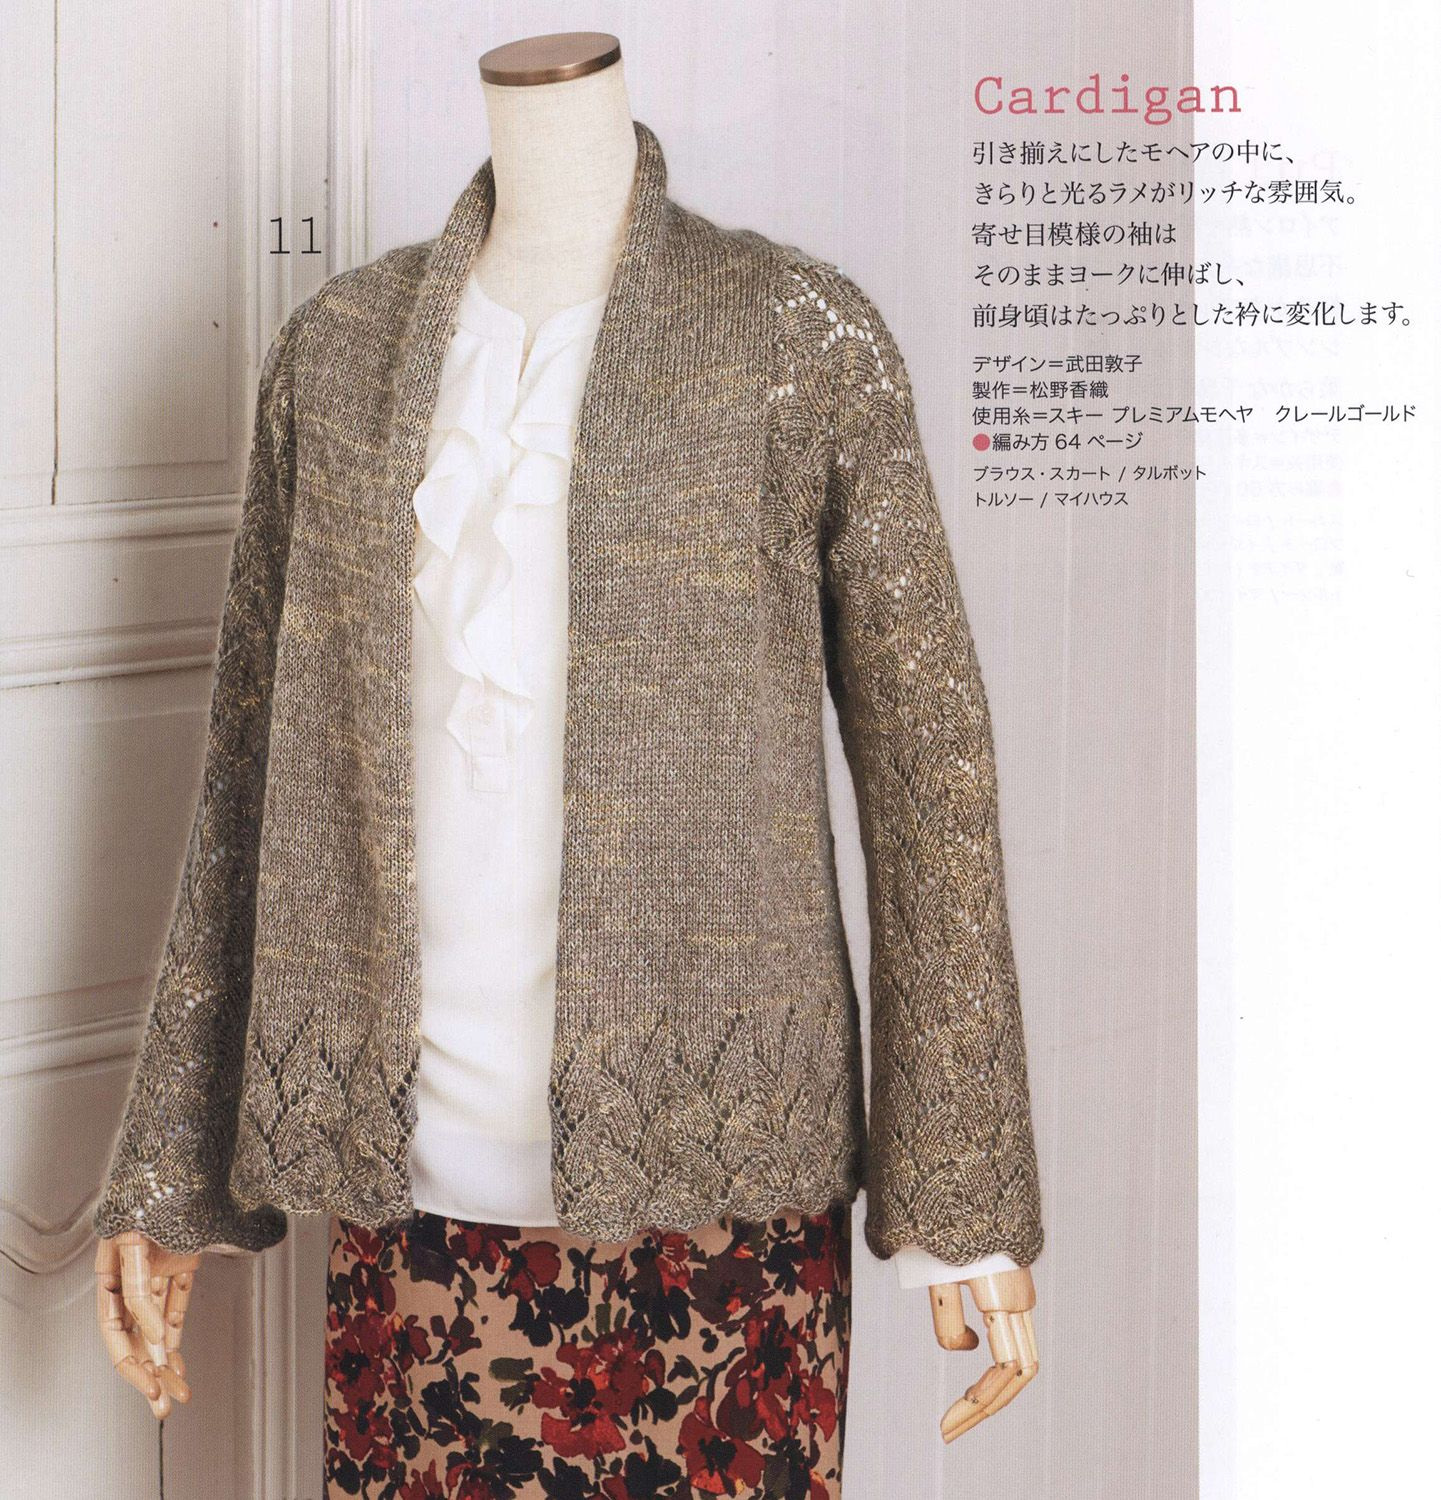 Japanese Knitting Patterns Free : Pin it 1 Like Image